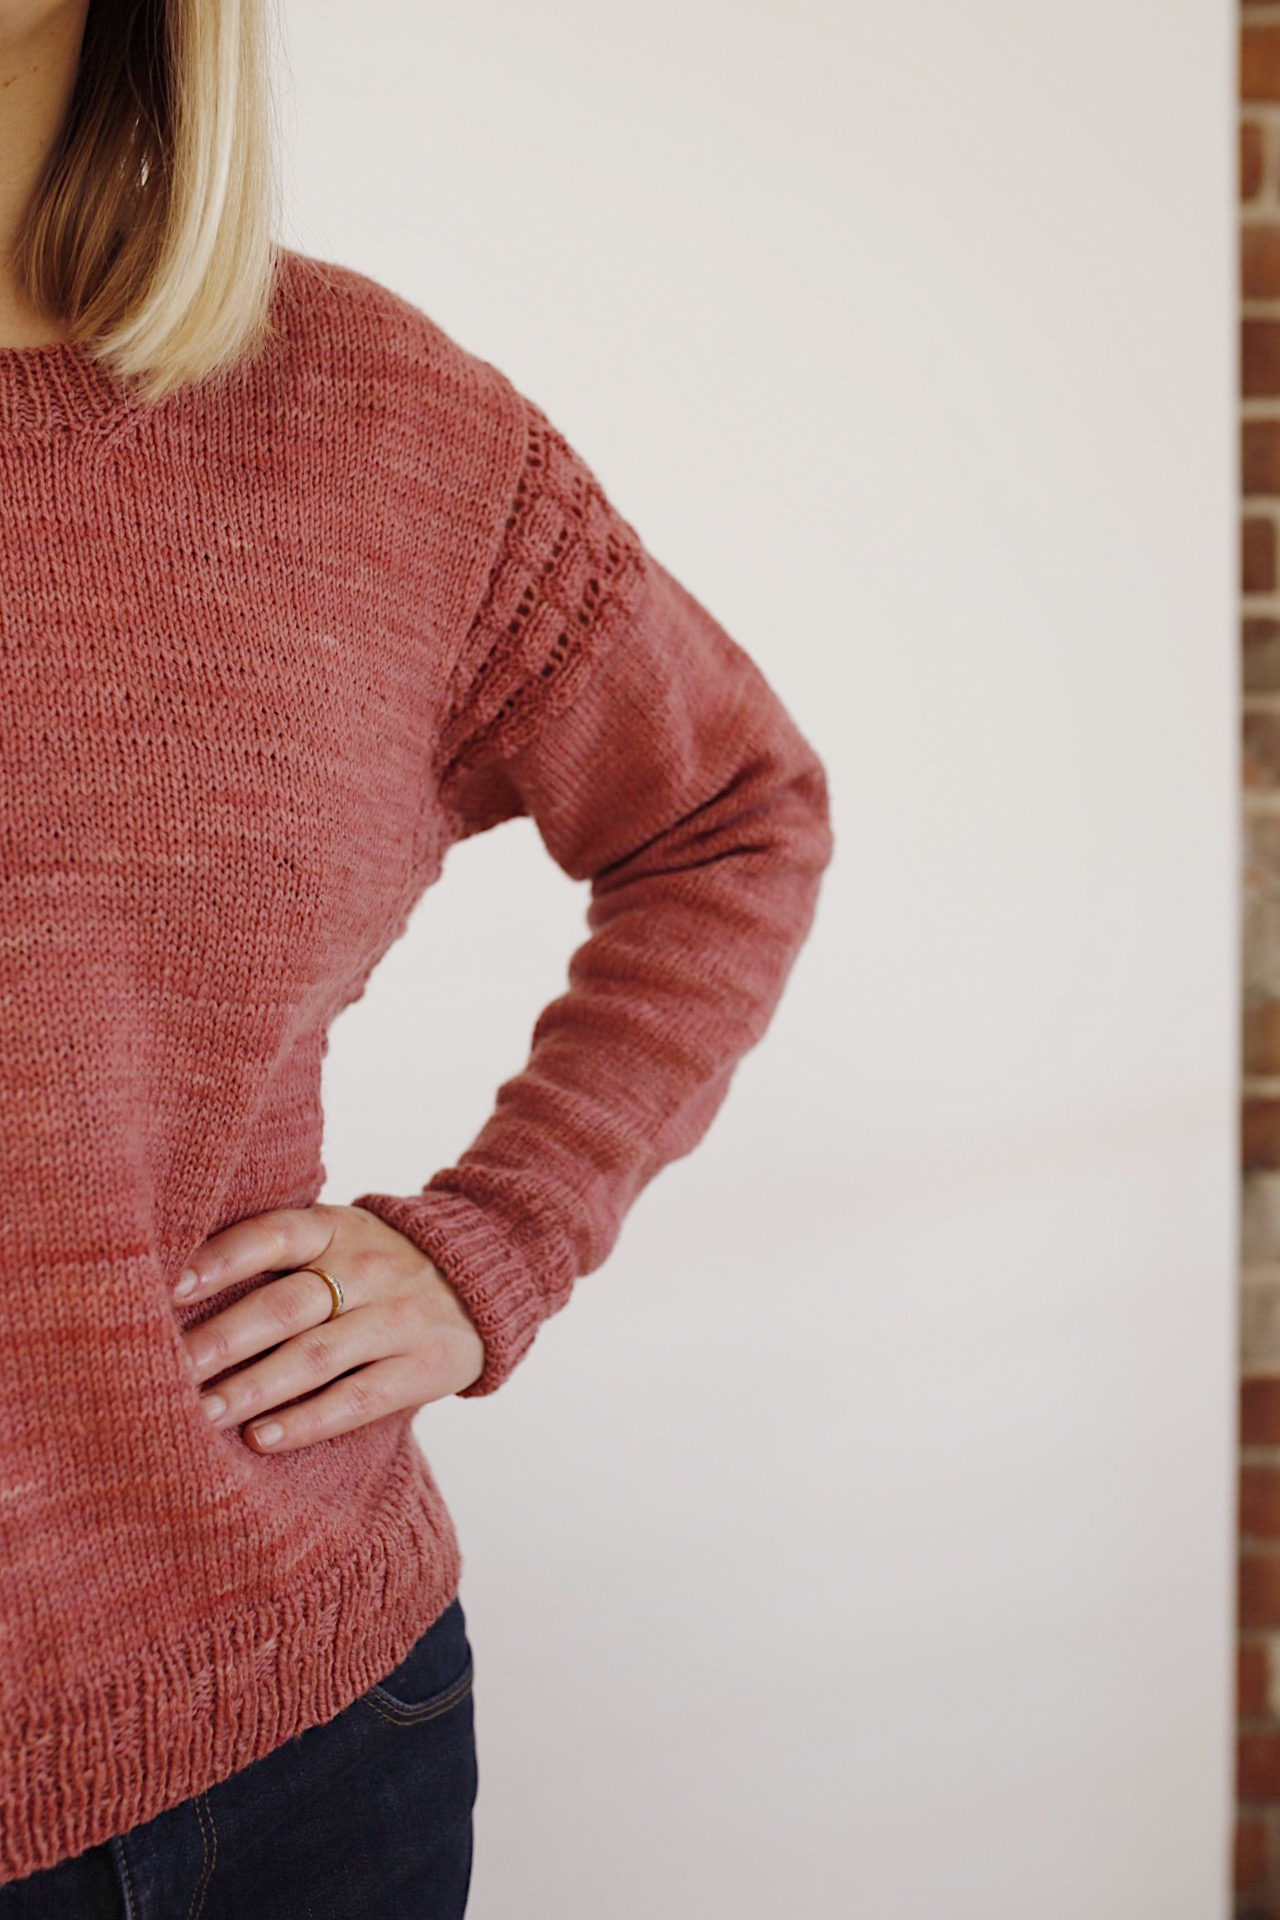 Hay Sweater Sleeves Clare Mountain HLH Designs